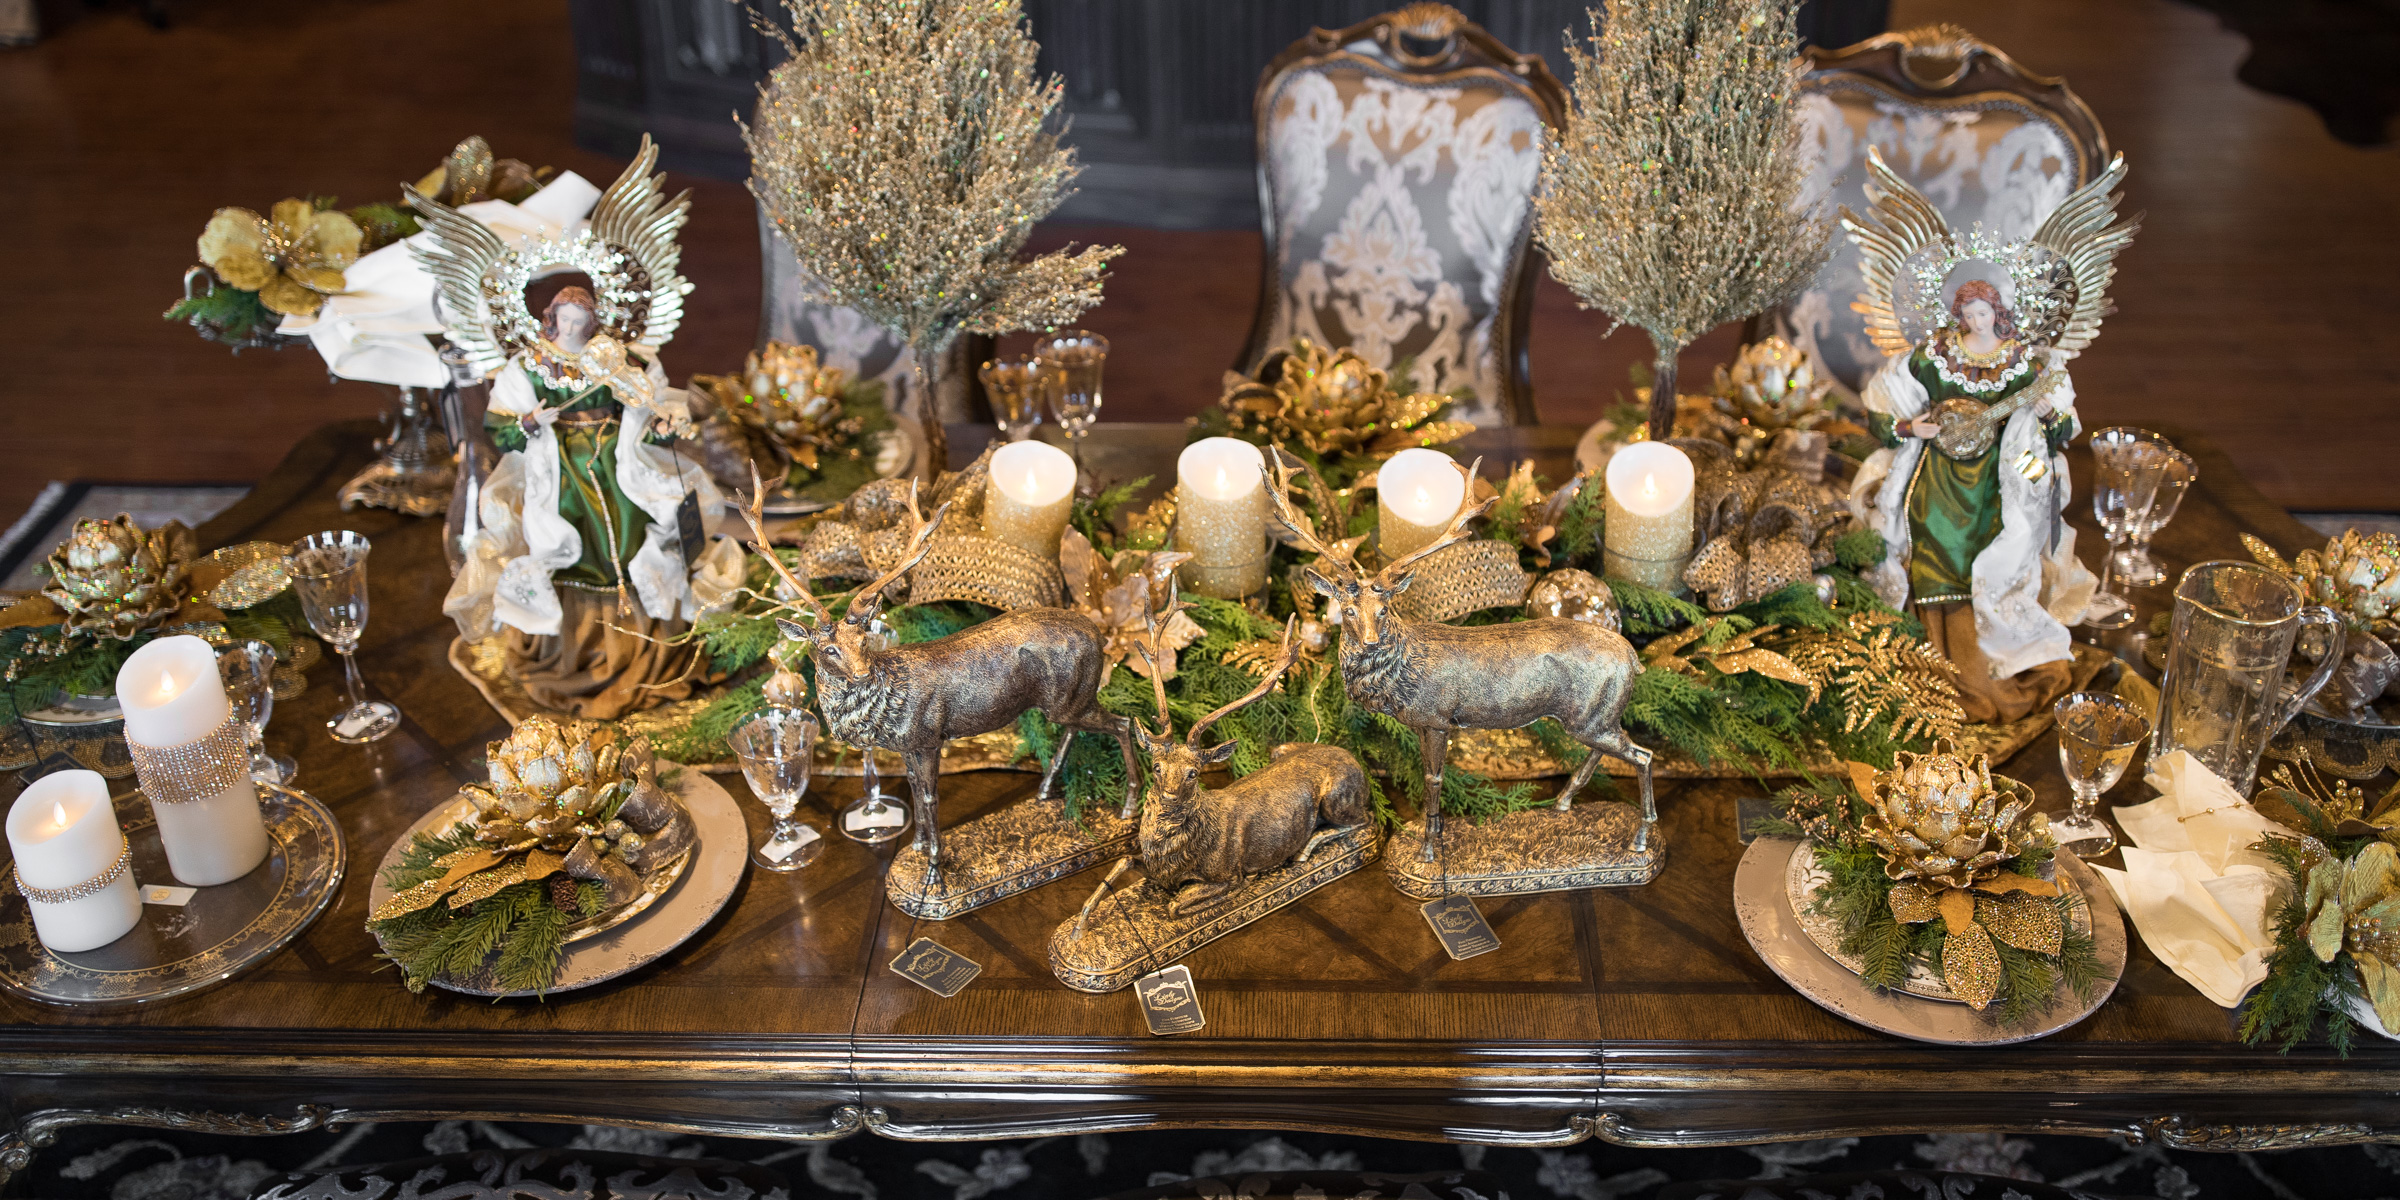 Holiday table setting archives linly designs silk floral arrangements storetags christmas decorating holiday decor holiday table setting marge carson silk floral arrangementsleave a comment mightylinksfo Choice Image